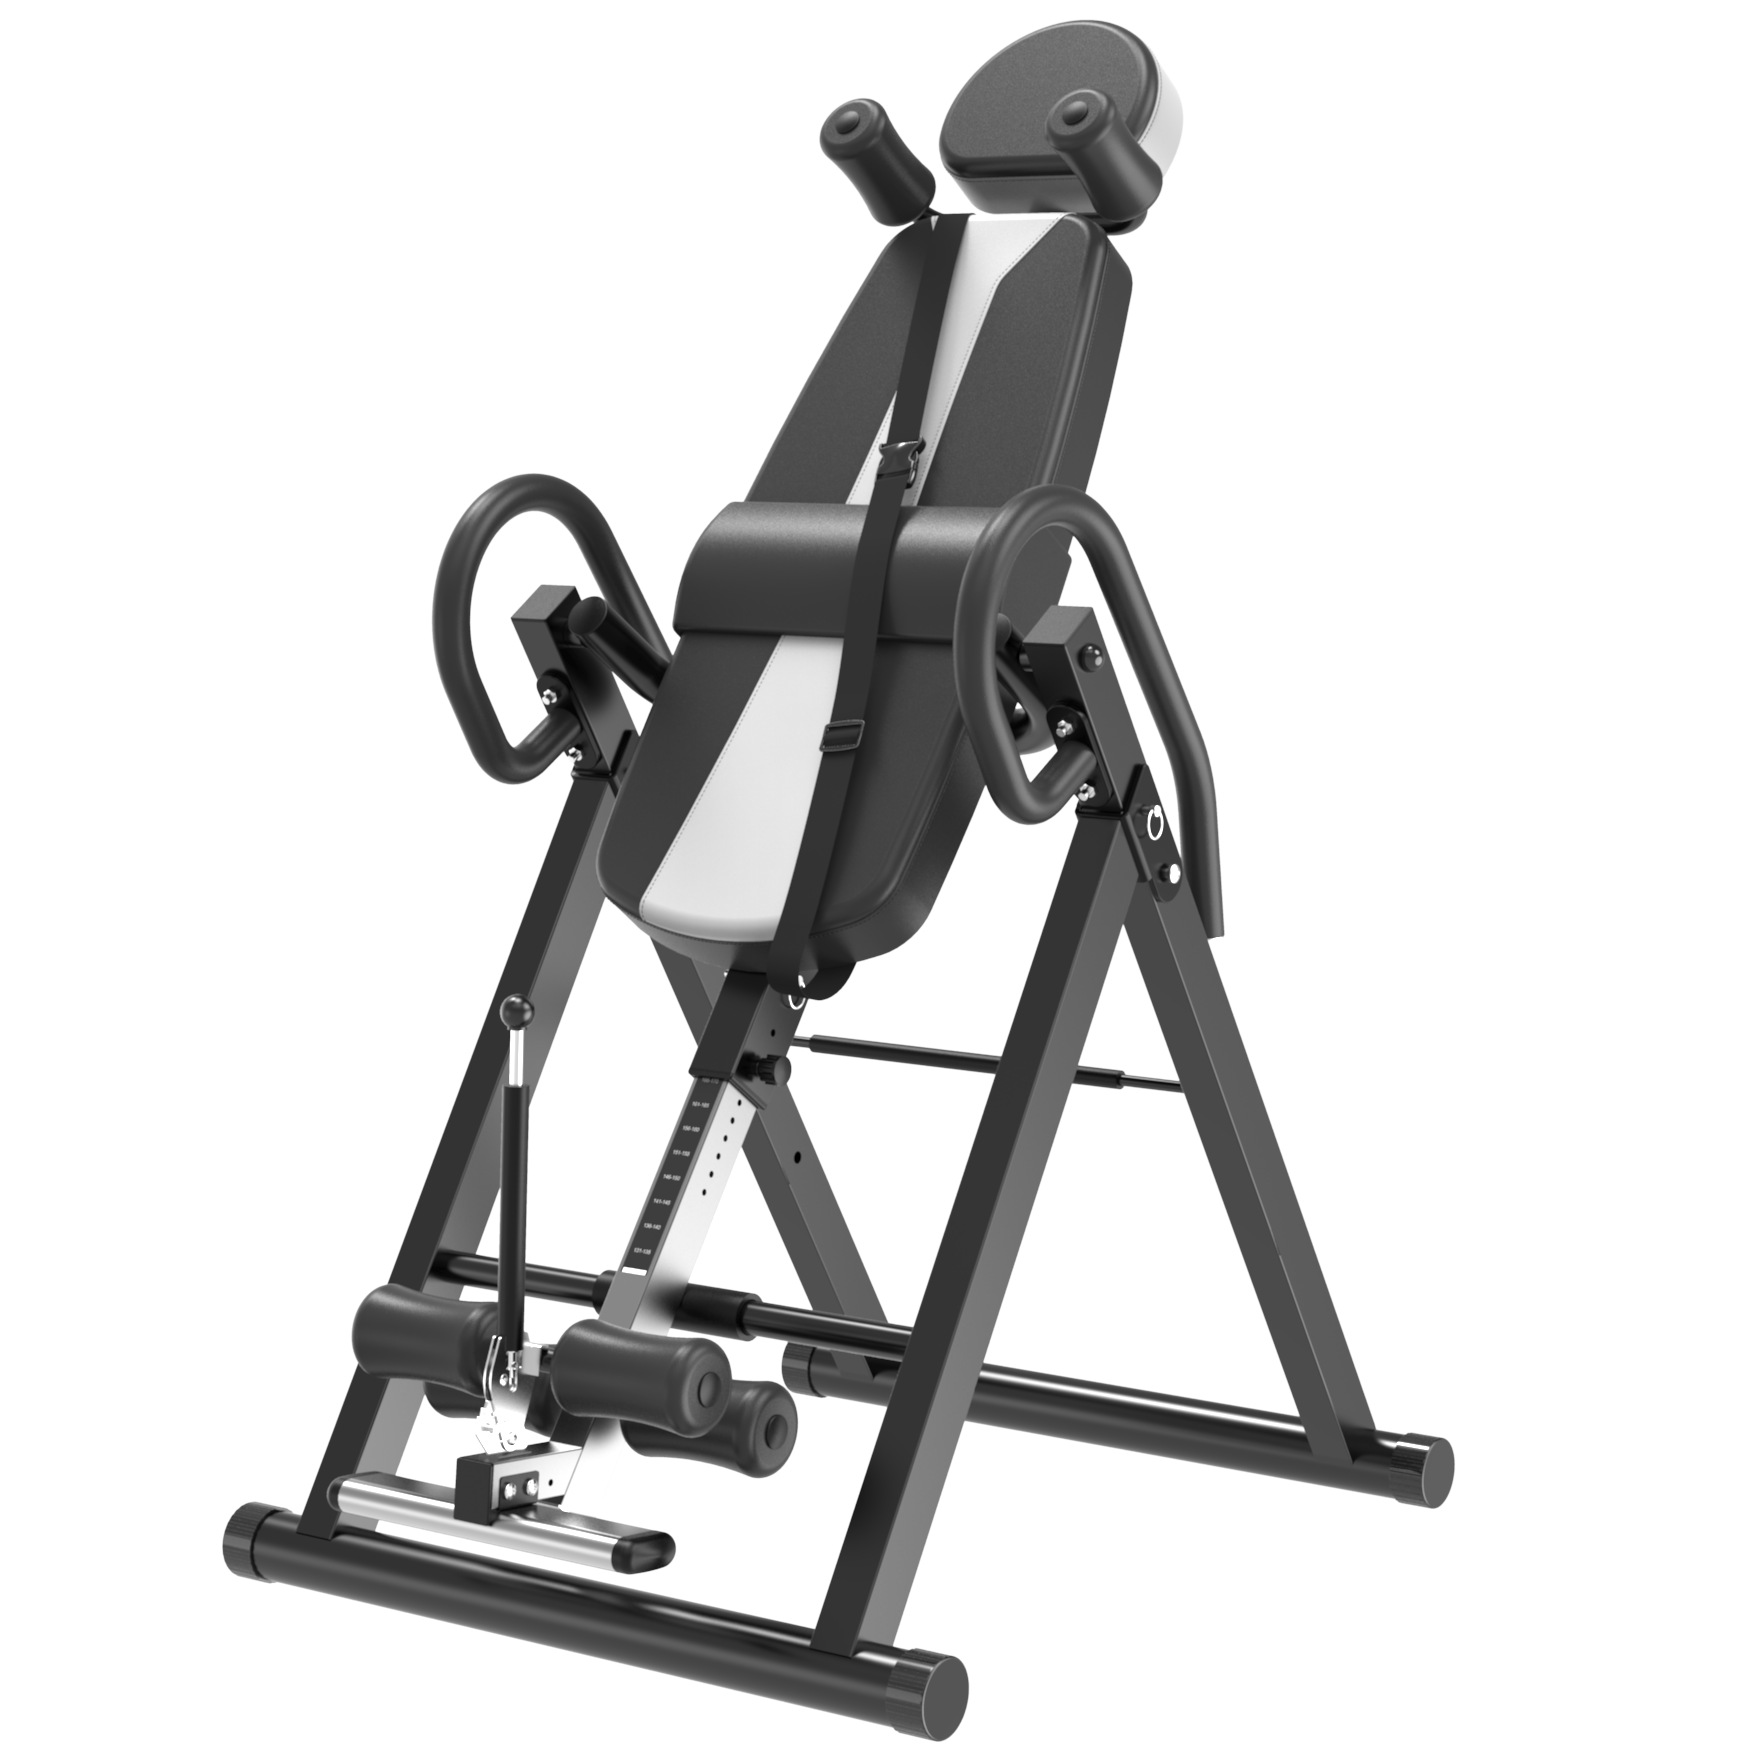 High Quality Safer Integrated Fitness Equipment Inversion Table Back Stretcher Machine for Pain Relief Therapy Height Adjustable